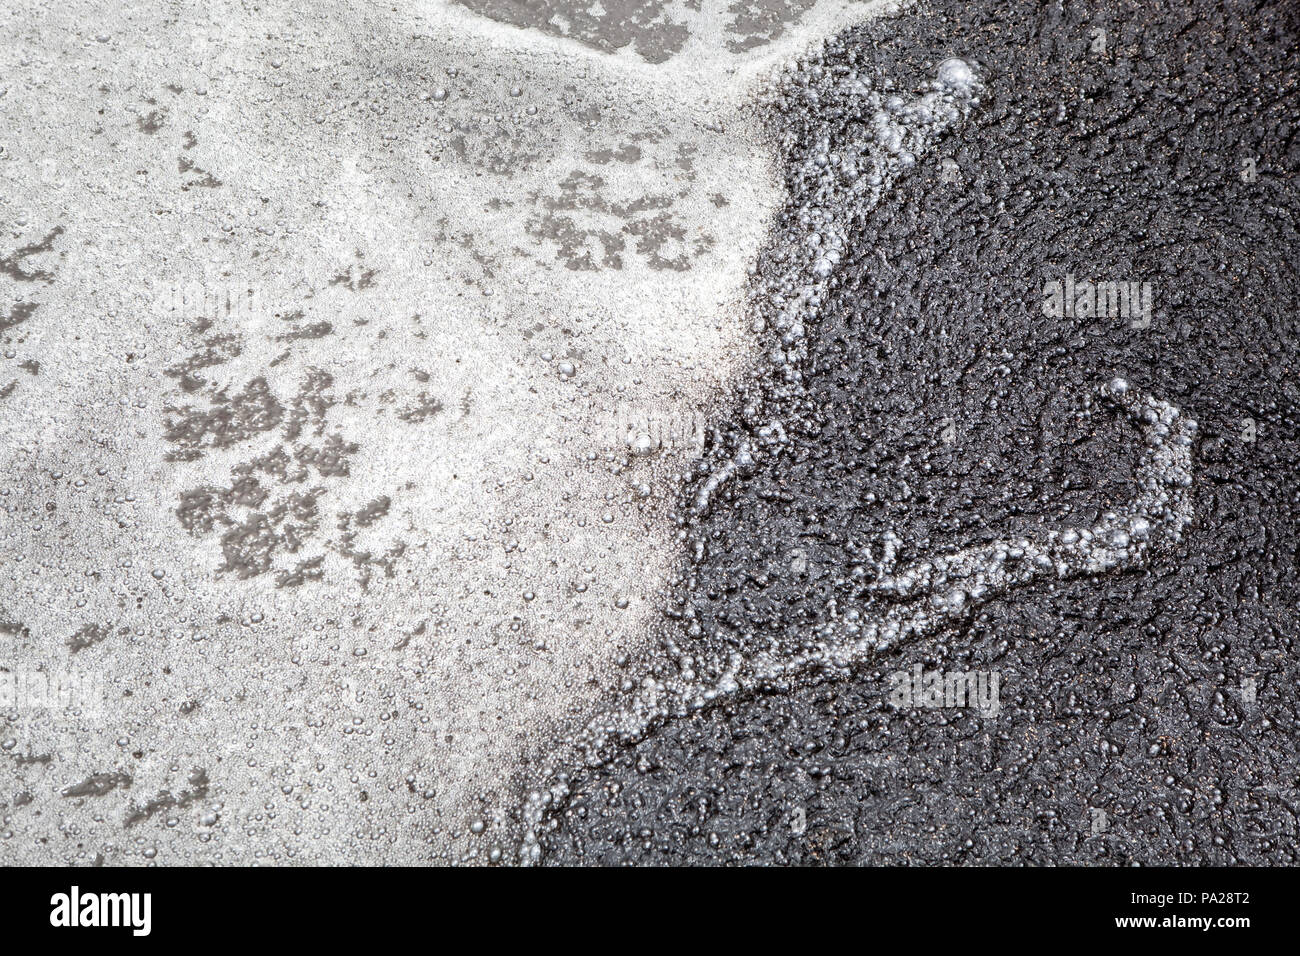 Aeration of wasterwater producing a cover of bubbles and foam coated in brown-black sludge - Stock Image